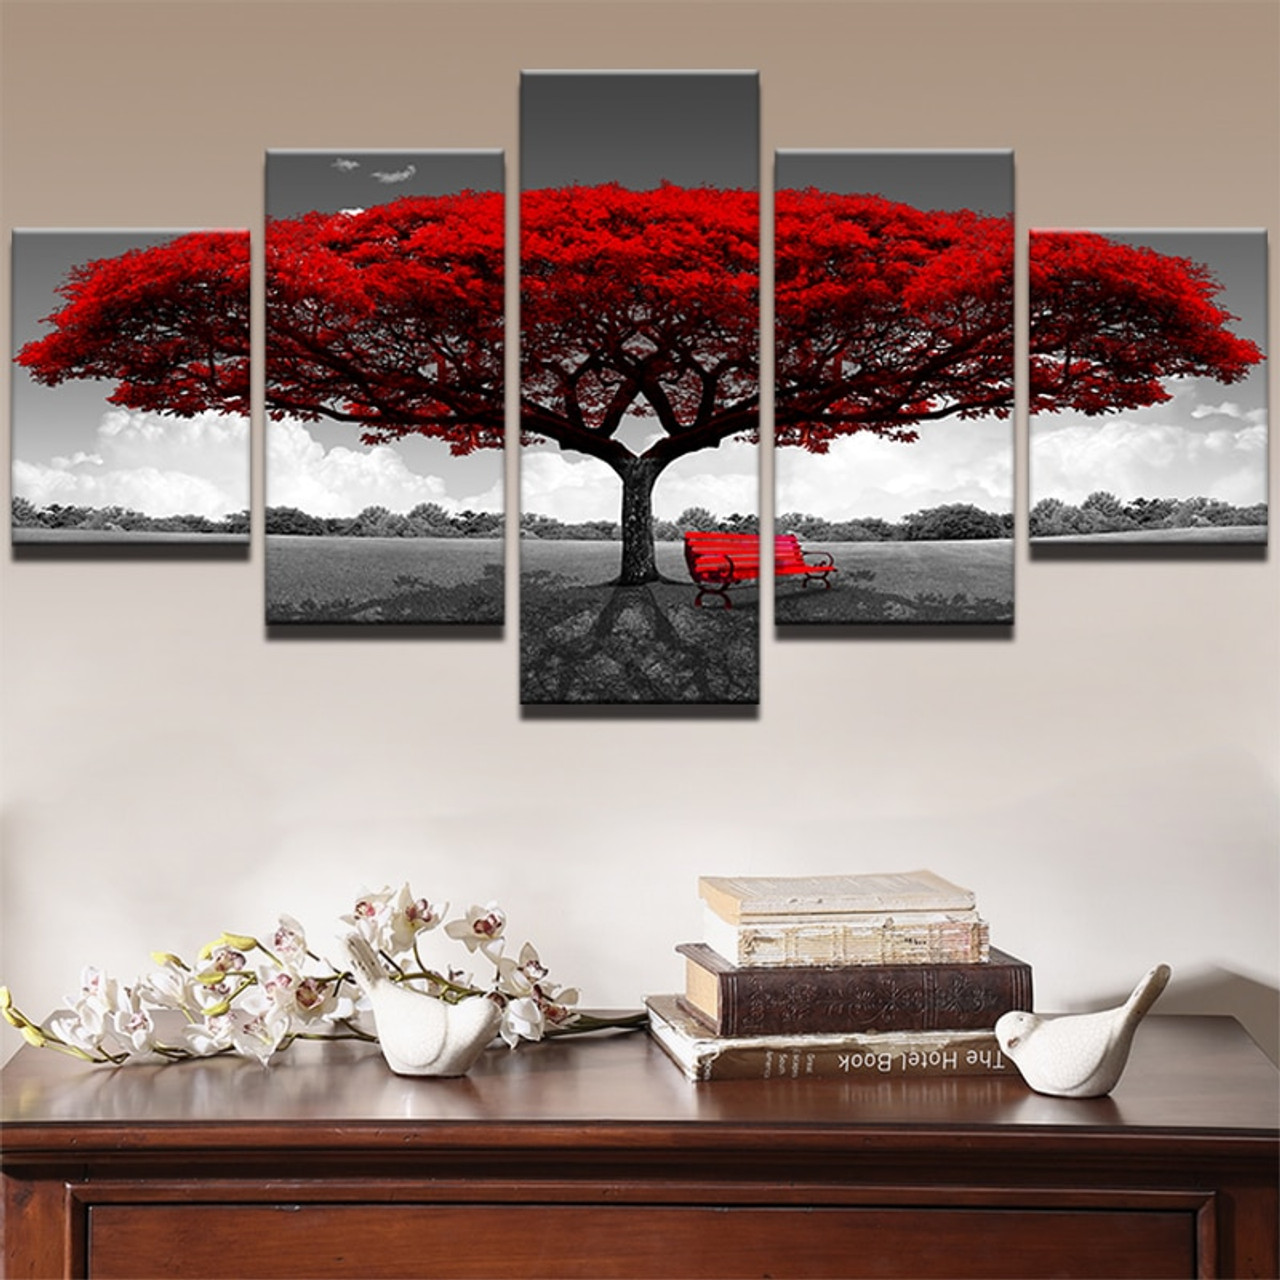 Canvas Hd Prints Posters Home Decor Living Room Wall Art 5 Pieces Red Tree Art Scenery Paintings Landscape Pictures Framework Onshopdeals Com